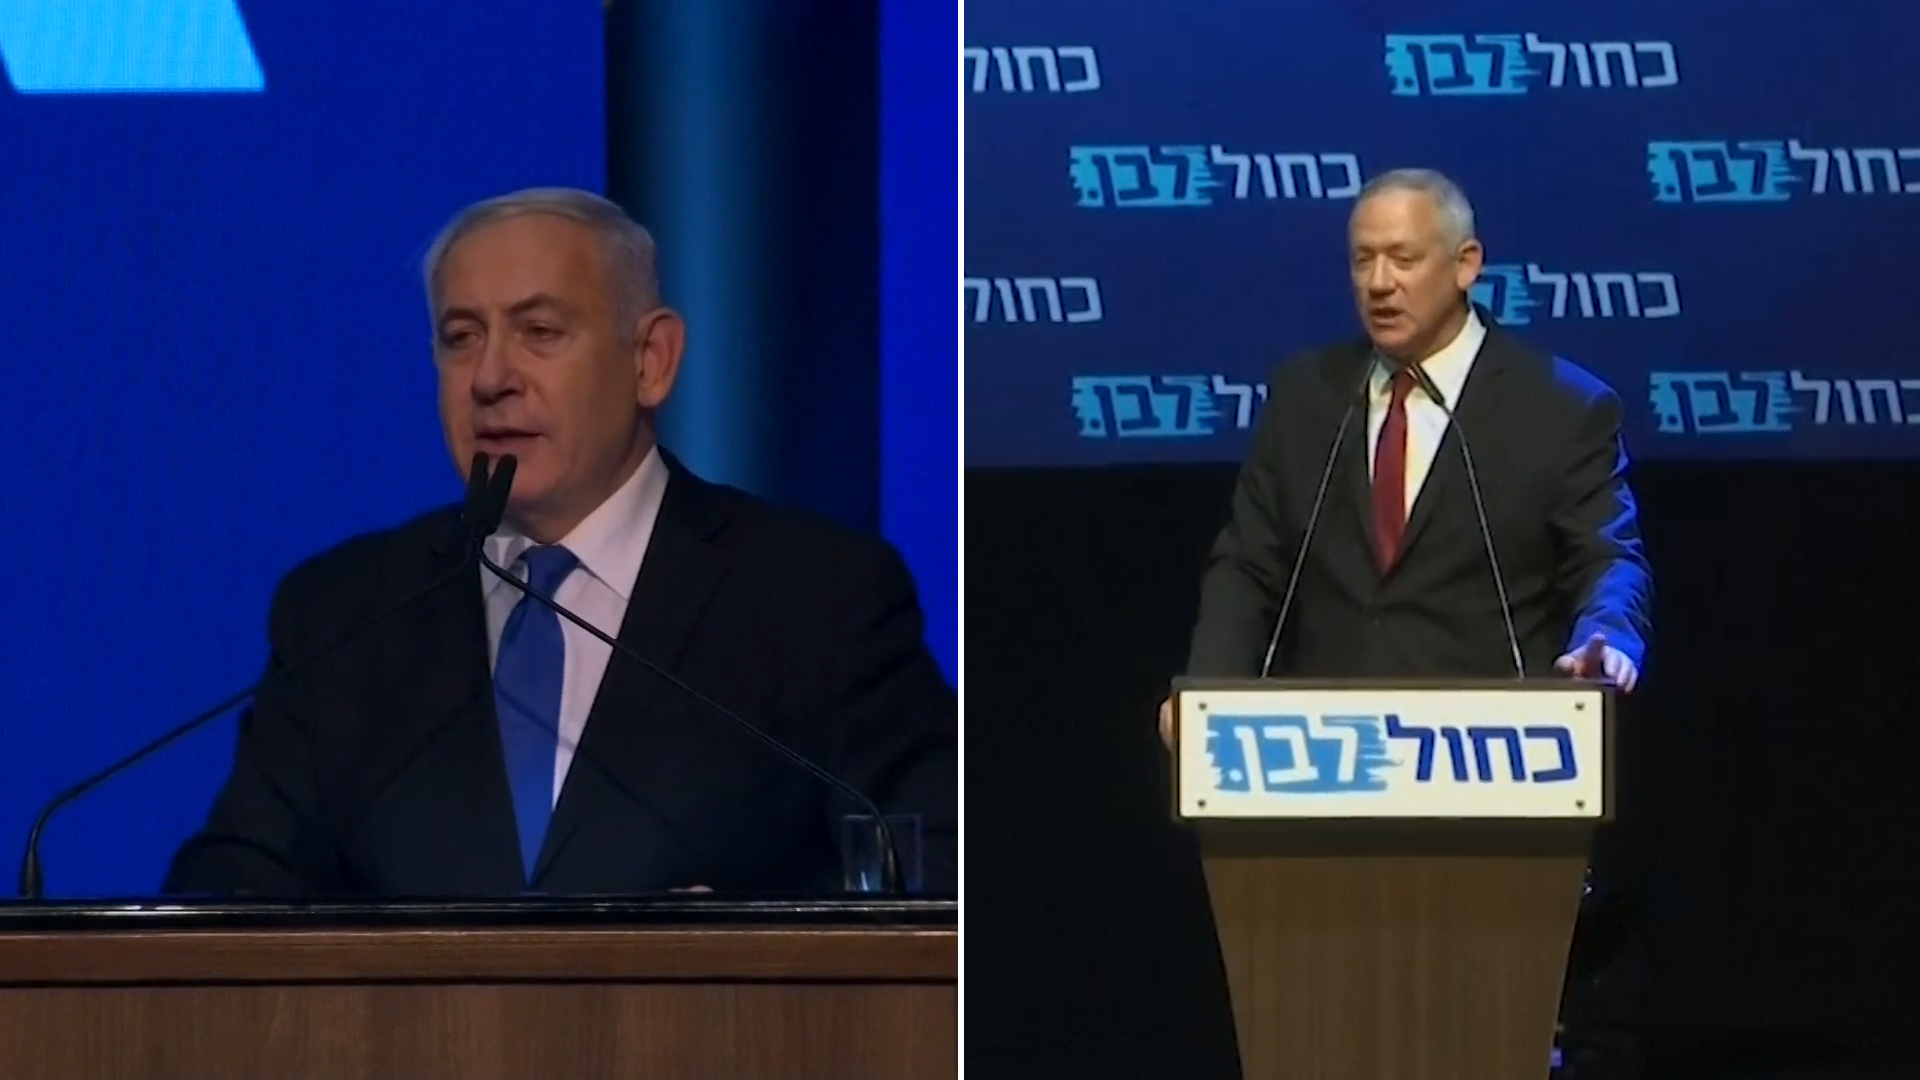 Israel's two main parties locked in dead heat as negotiations begin over new government